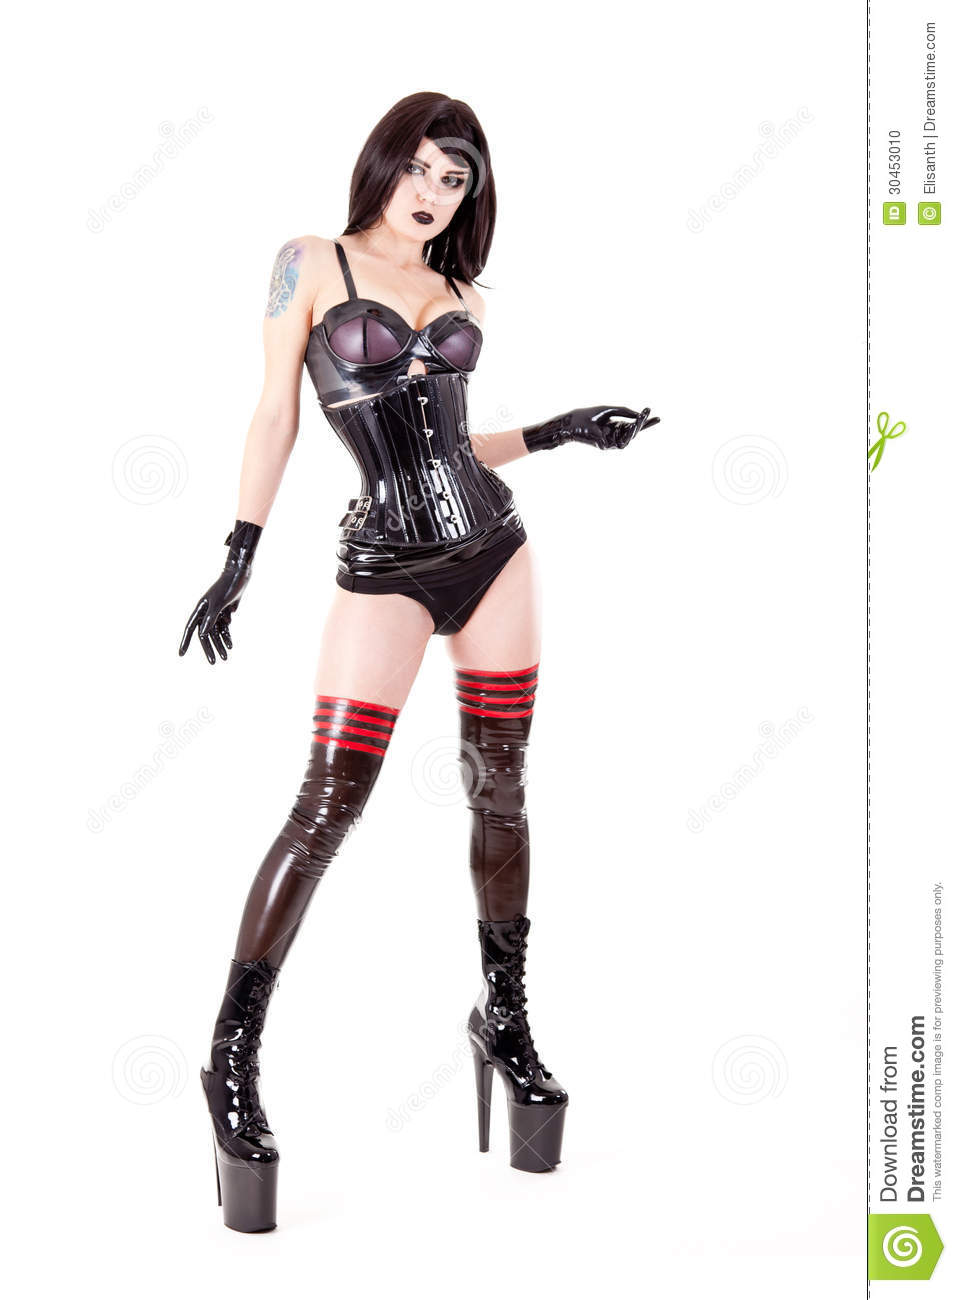 Female leather fetish clothes